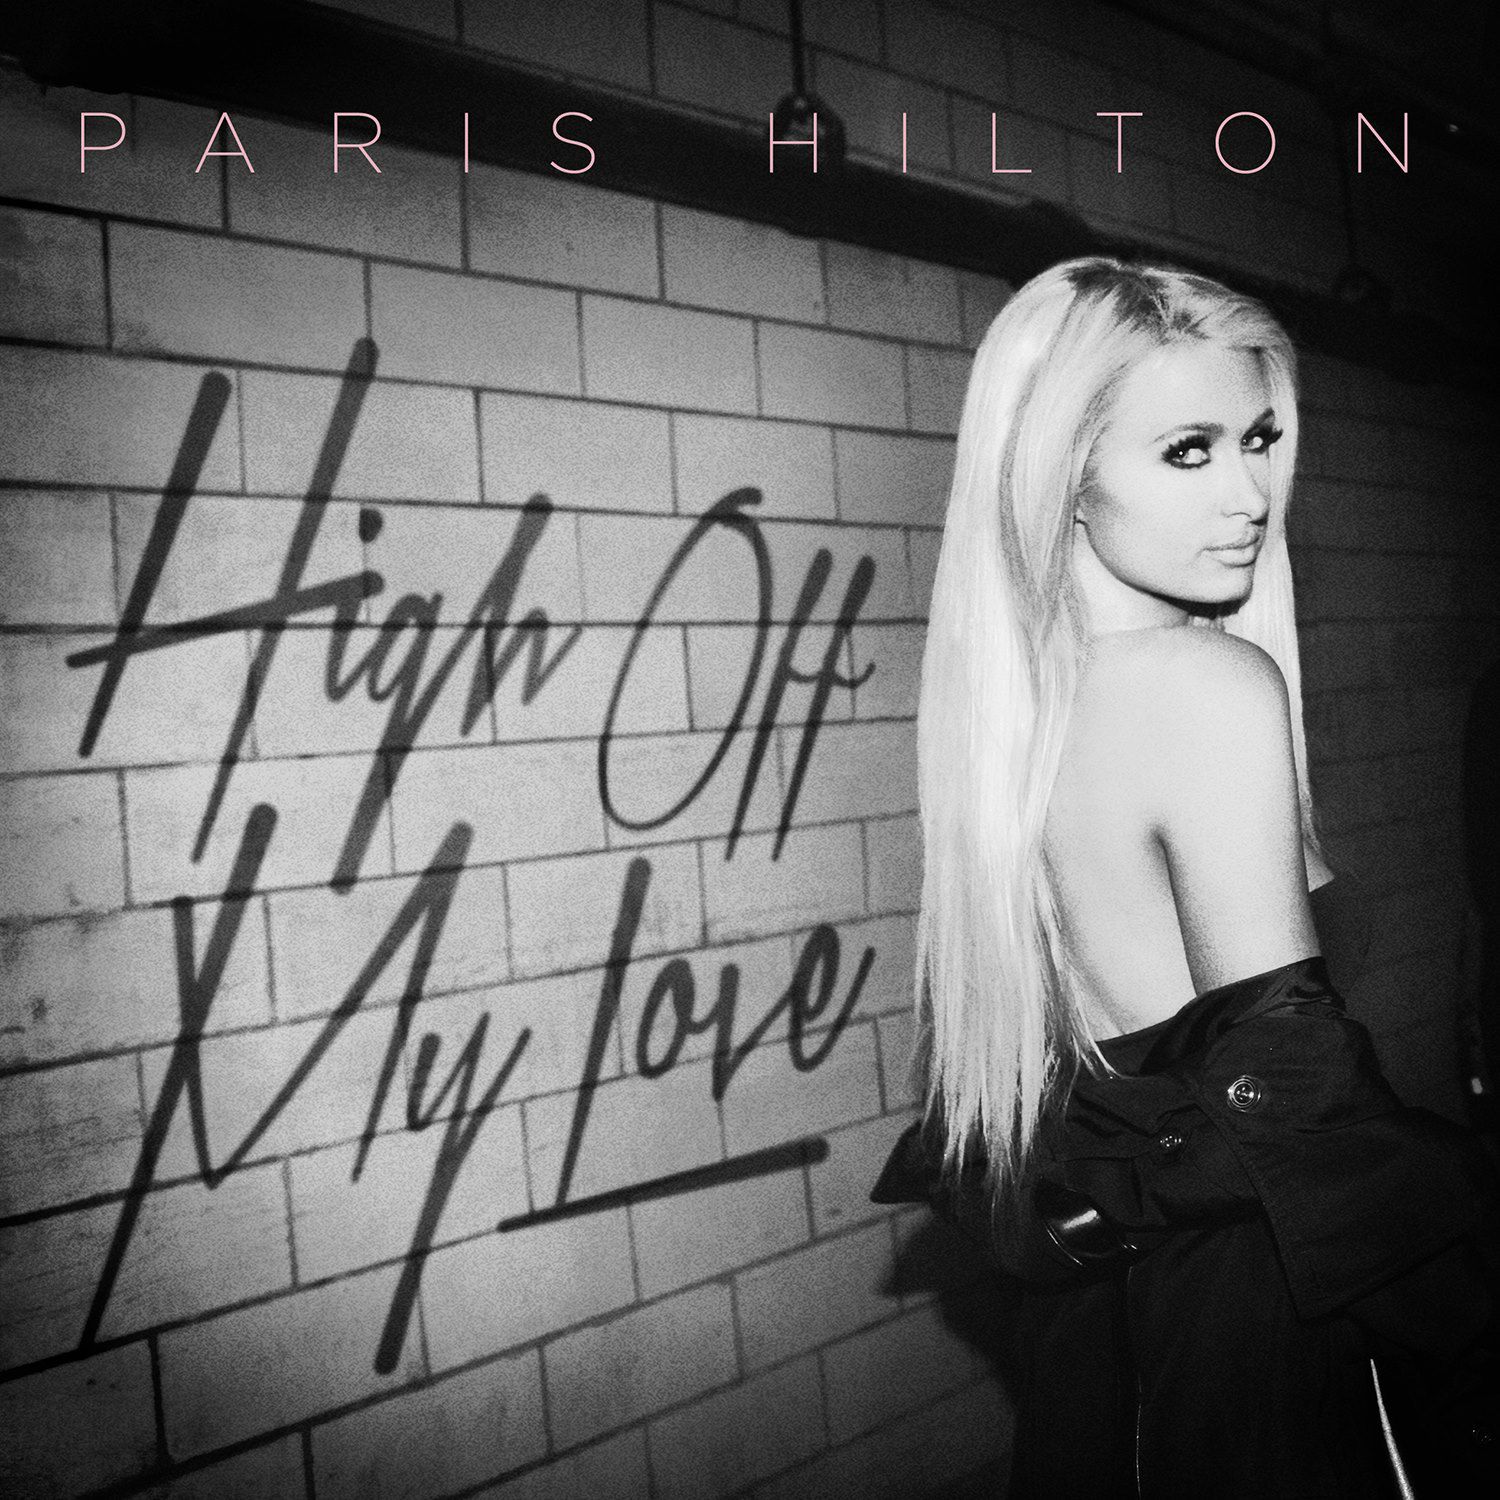 Paris Hilton & Birdman's New Music Video Isnspired by Madonna